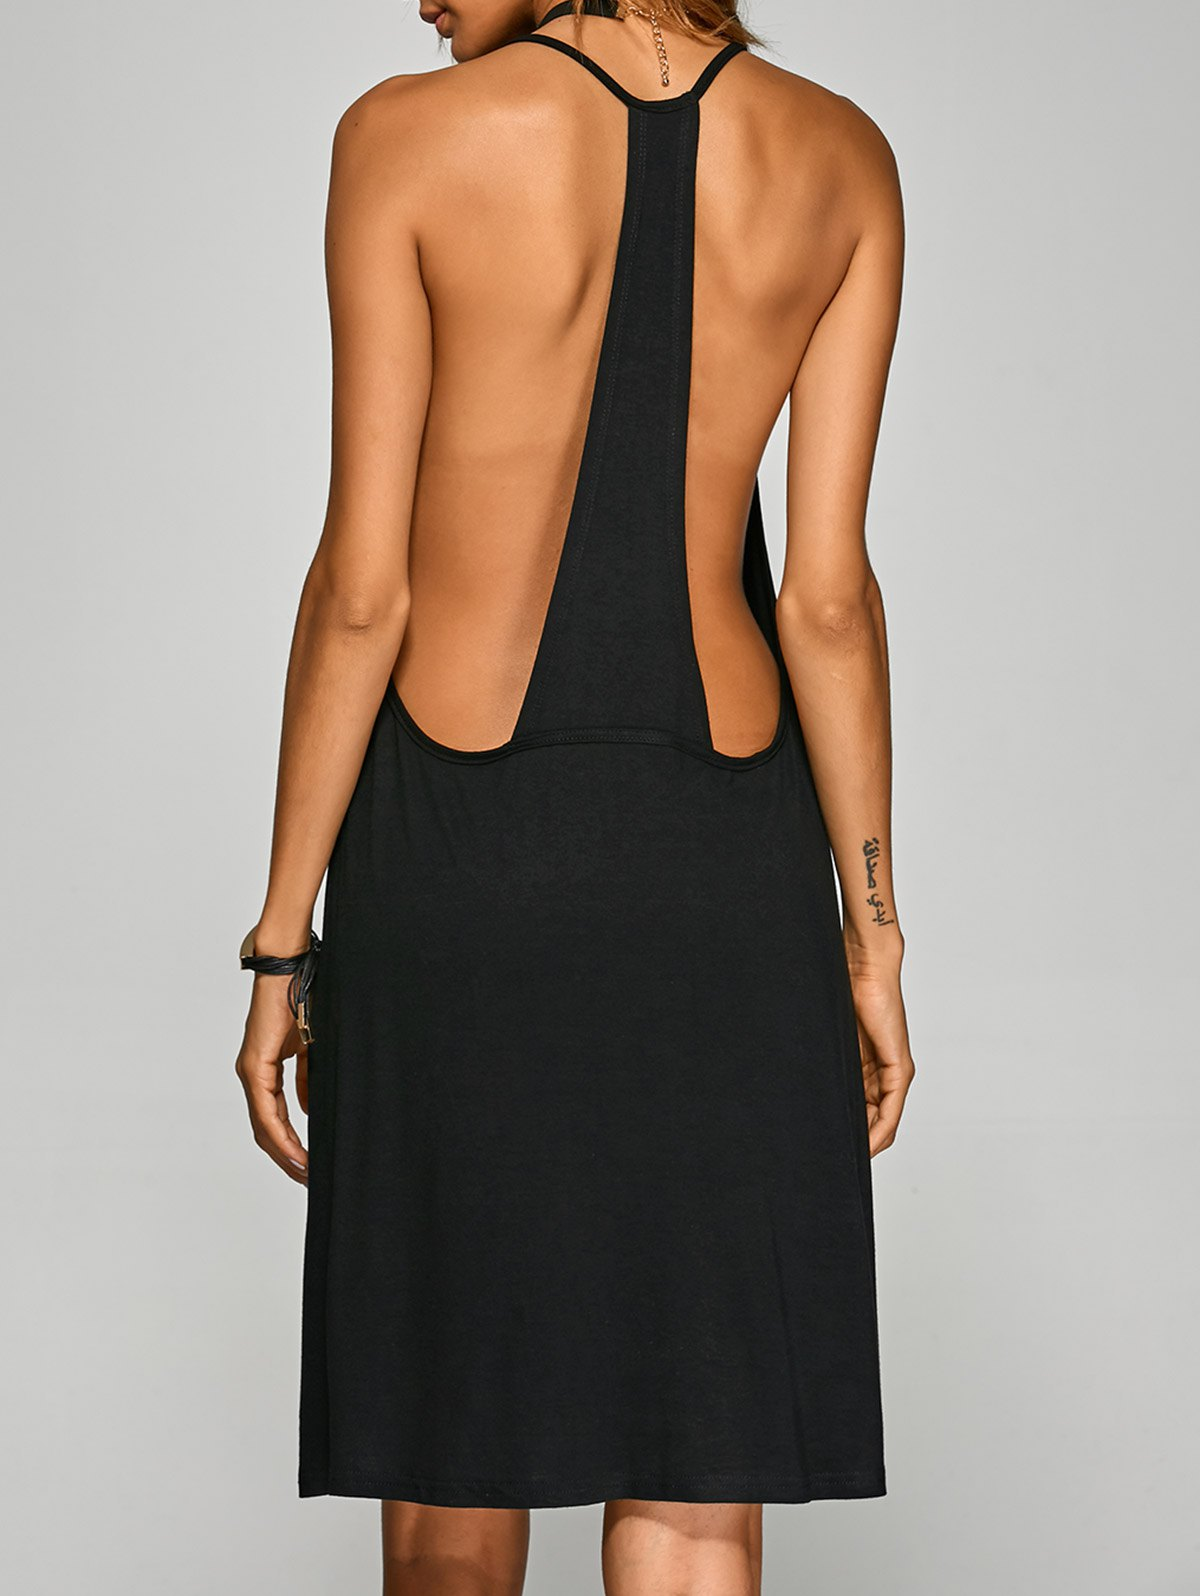 Racerback Cami Dress